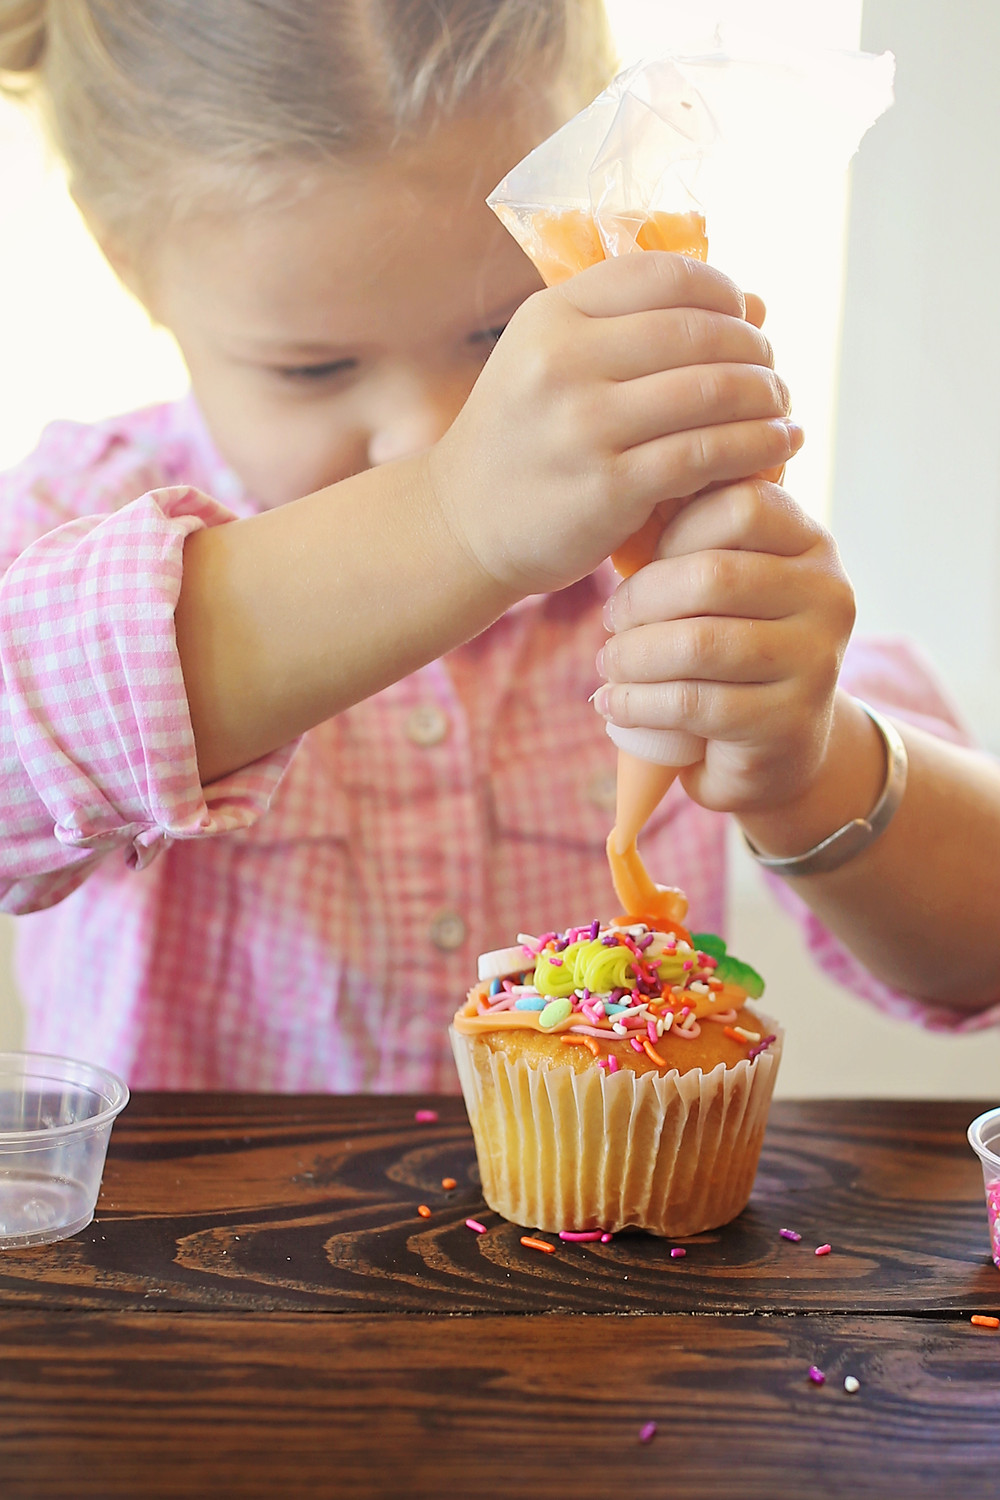 Adding icing on top of sprinkles on a vanilla cupcake